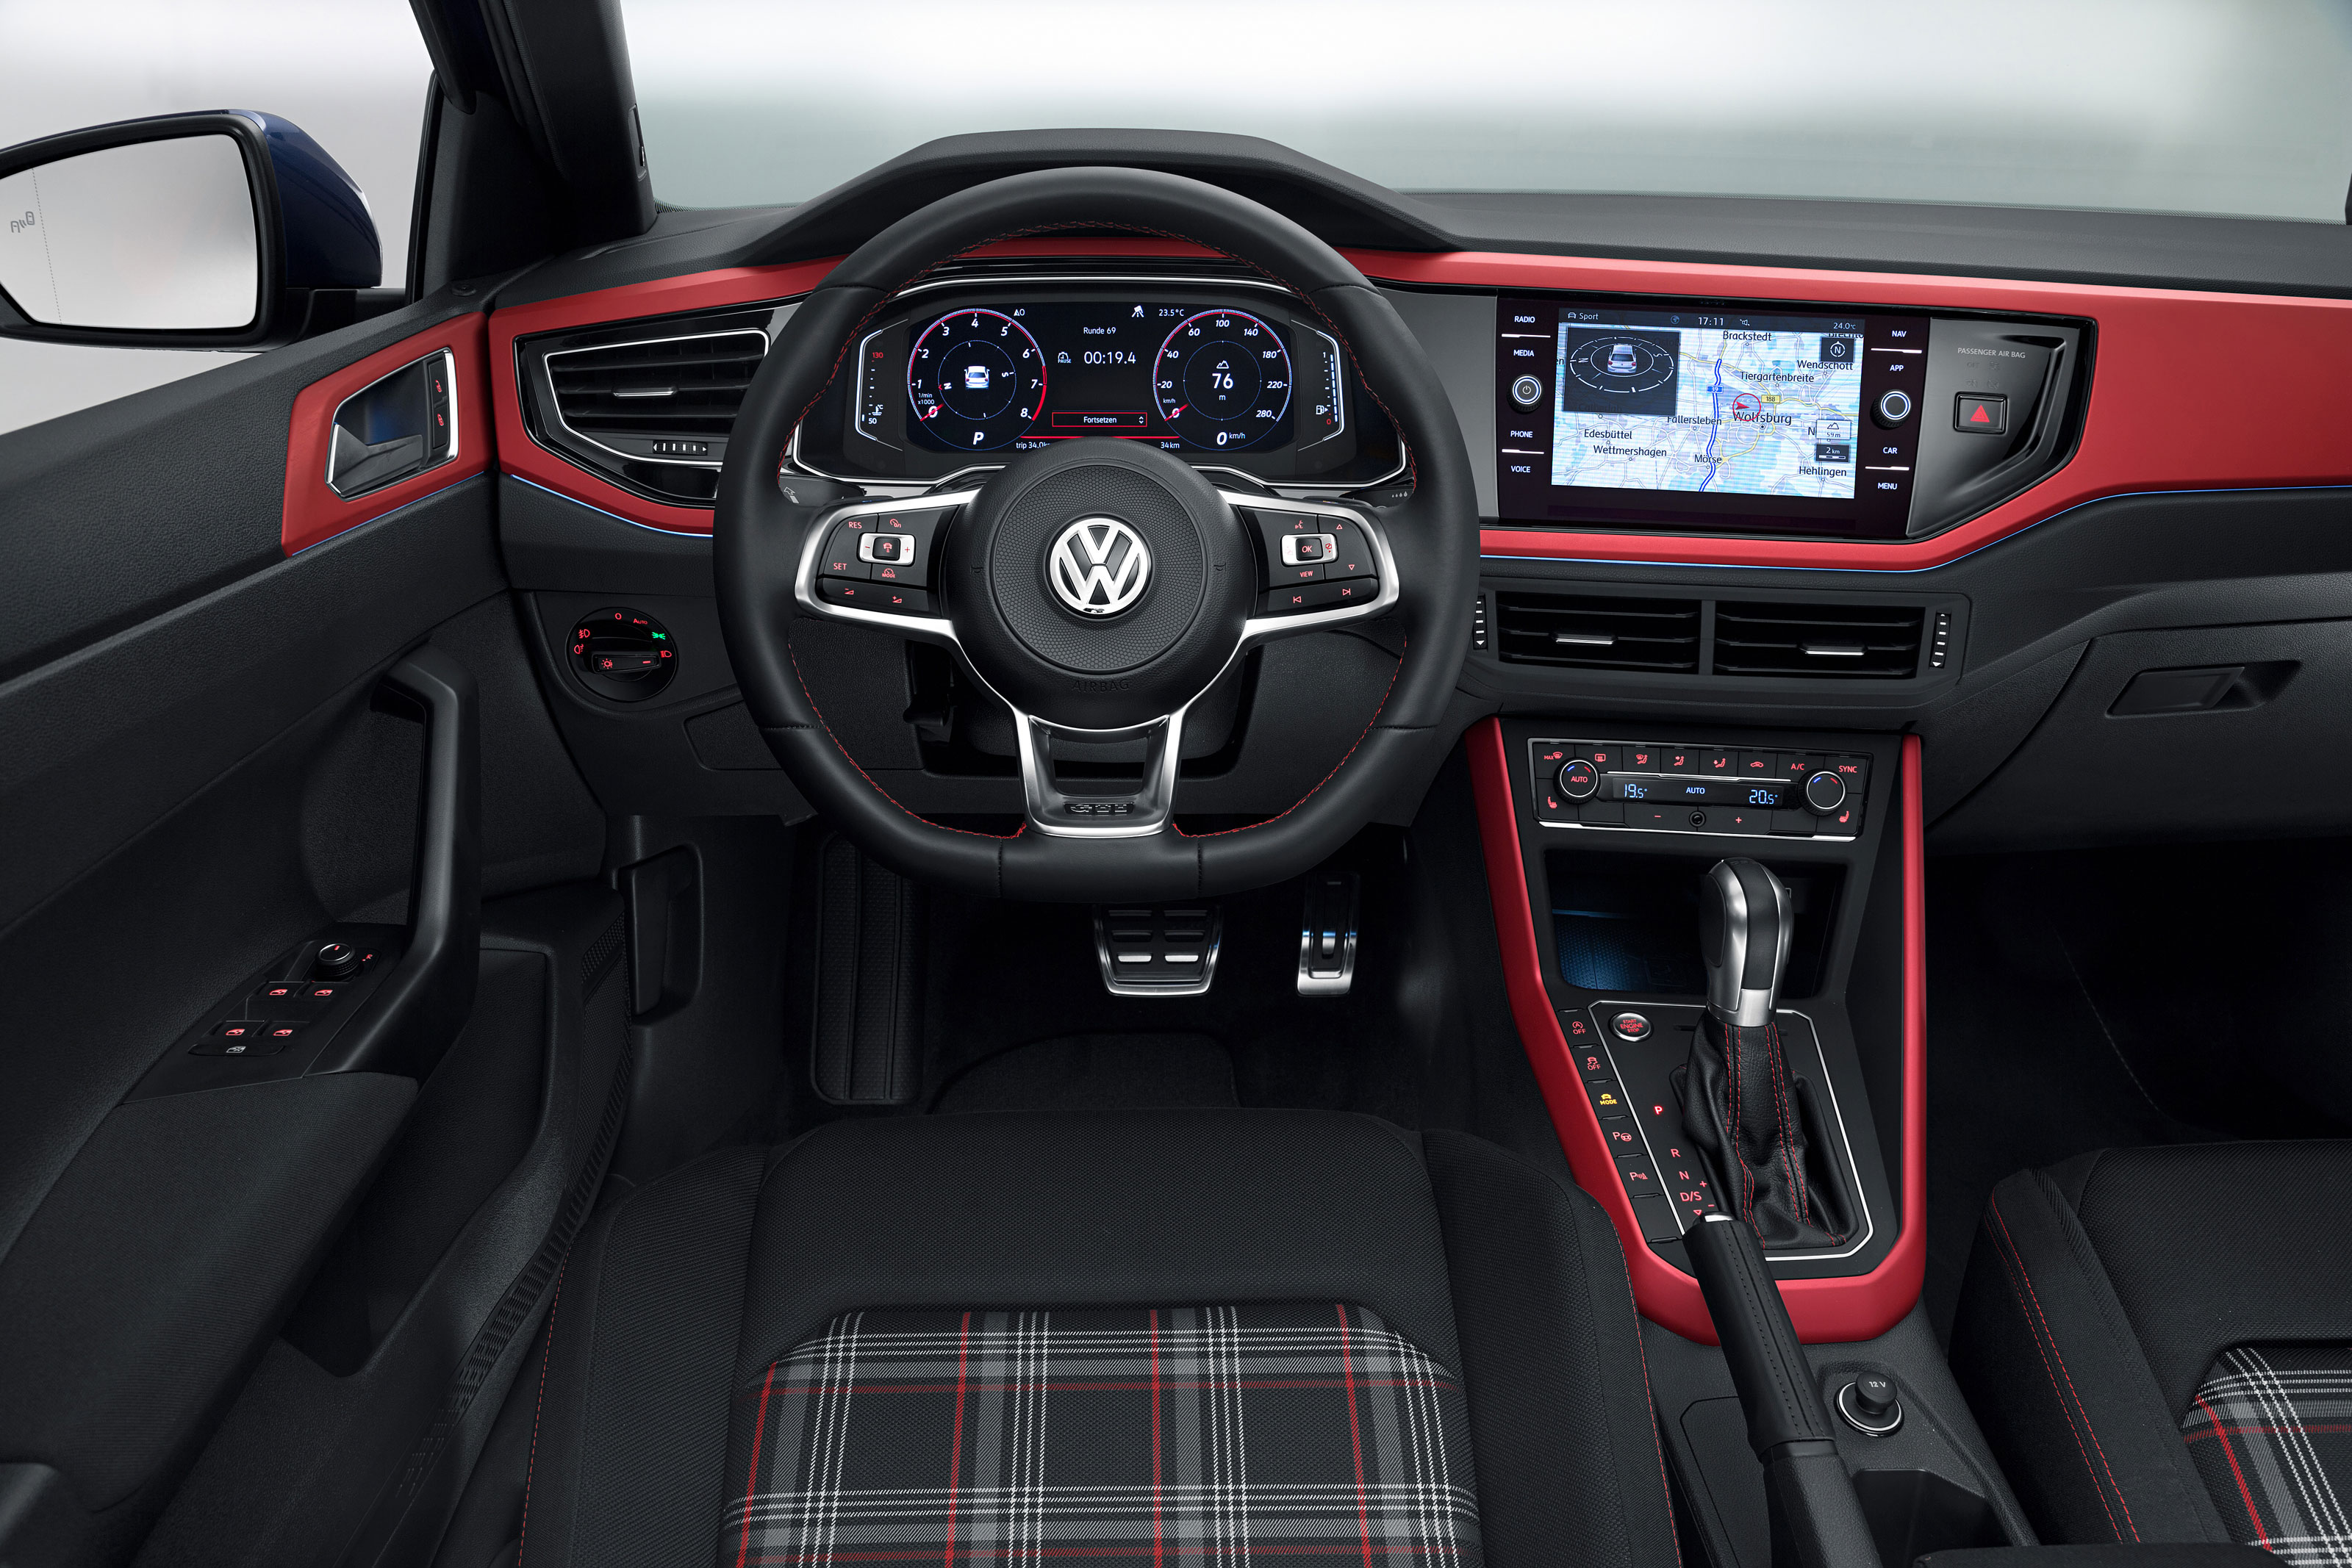 Vw Polo Gti 2018 Review Finally Worthy Of Those Three Iconic Letters Interior And Tech Evo